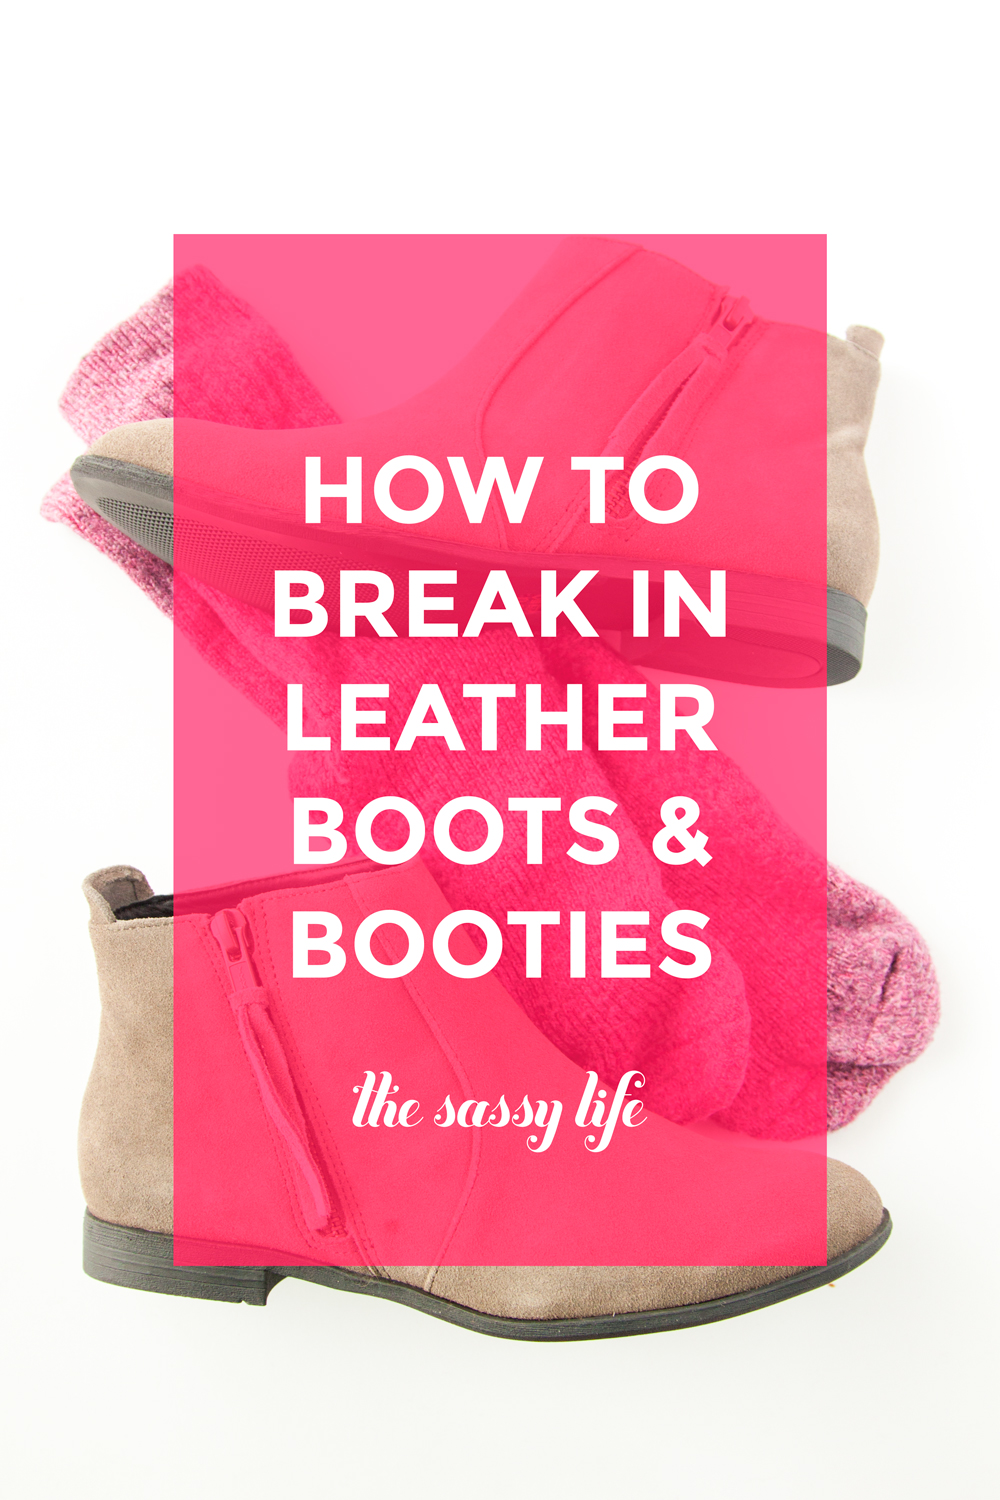 How to break in leather boots and booties